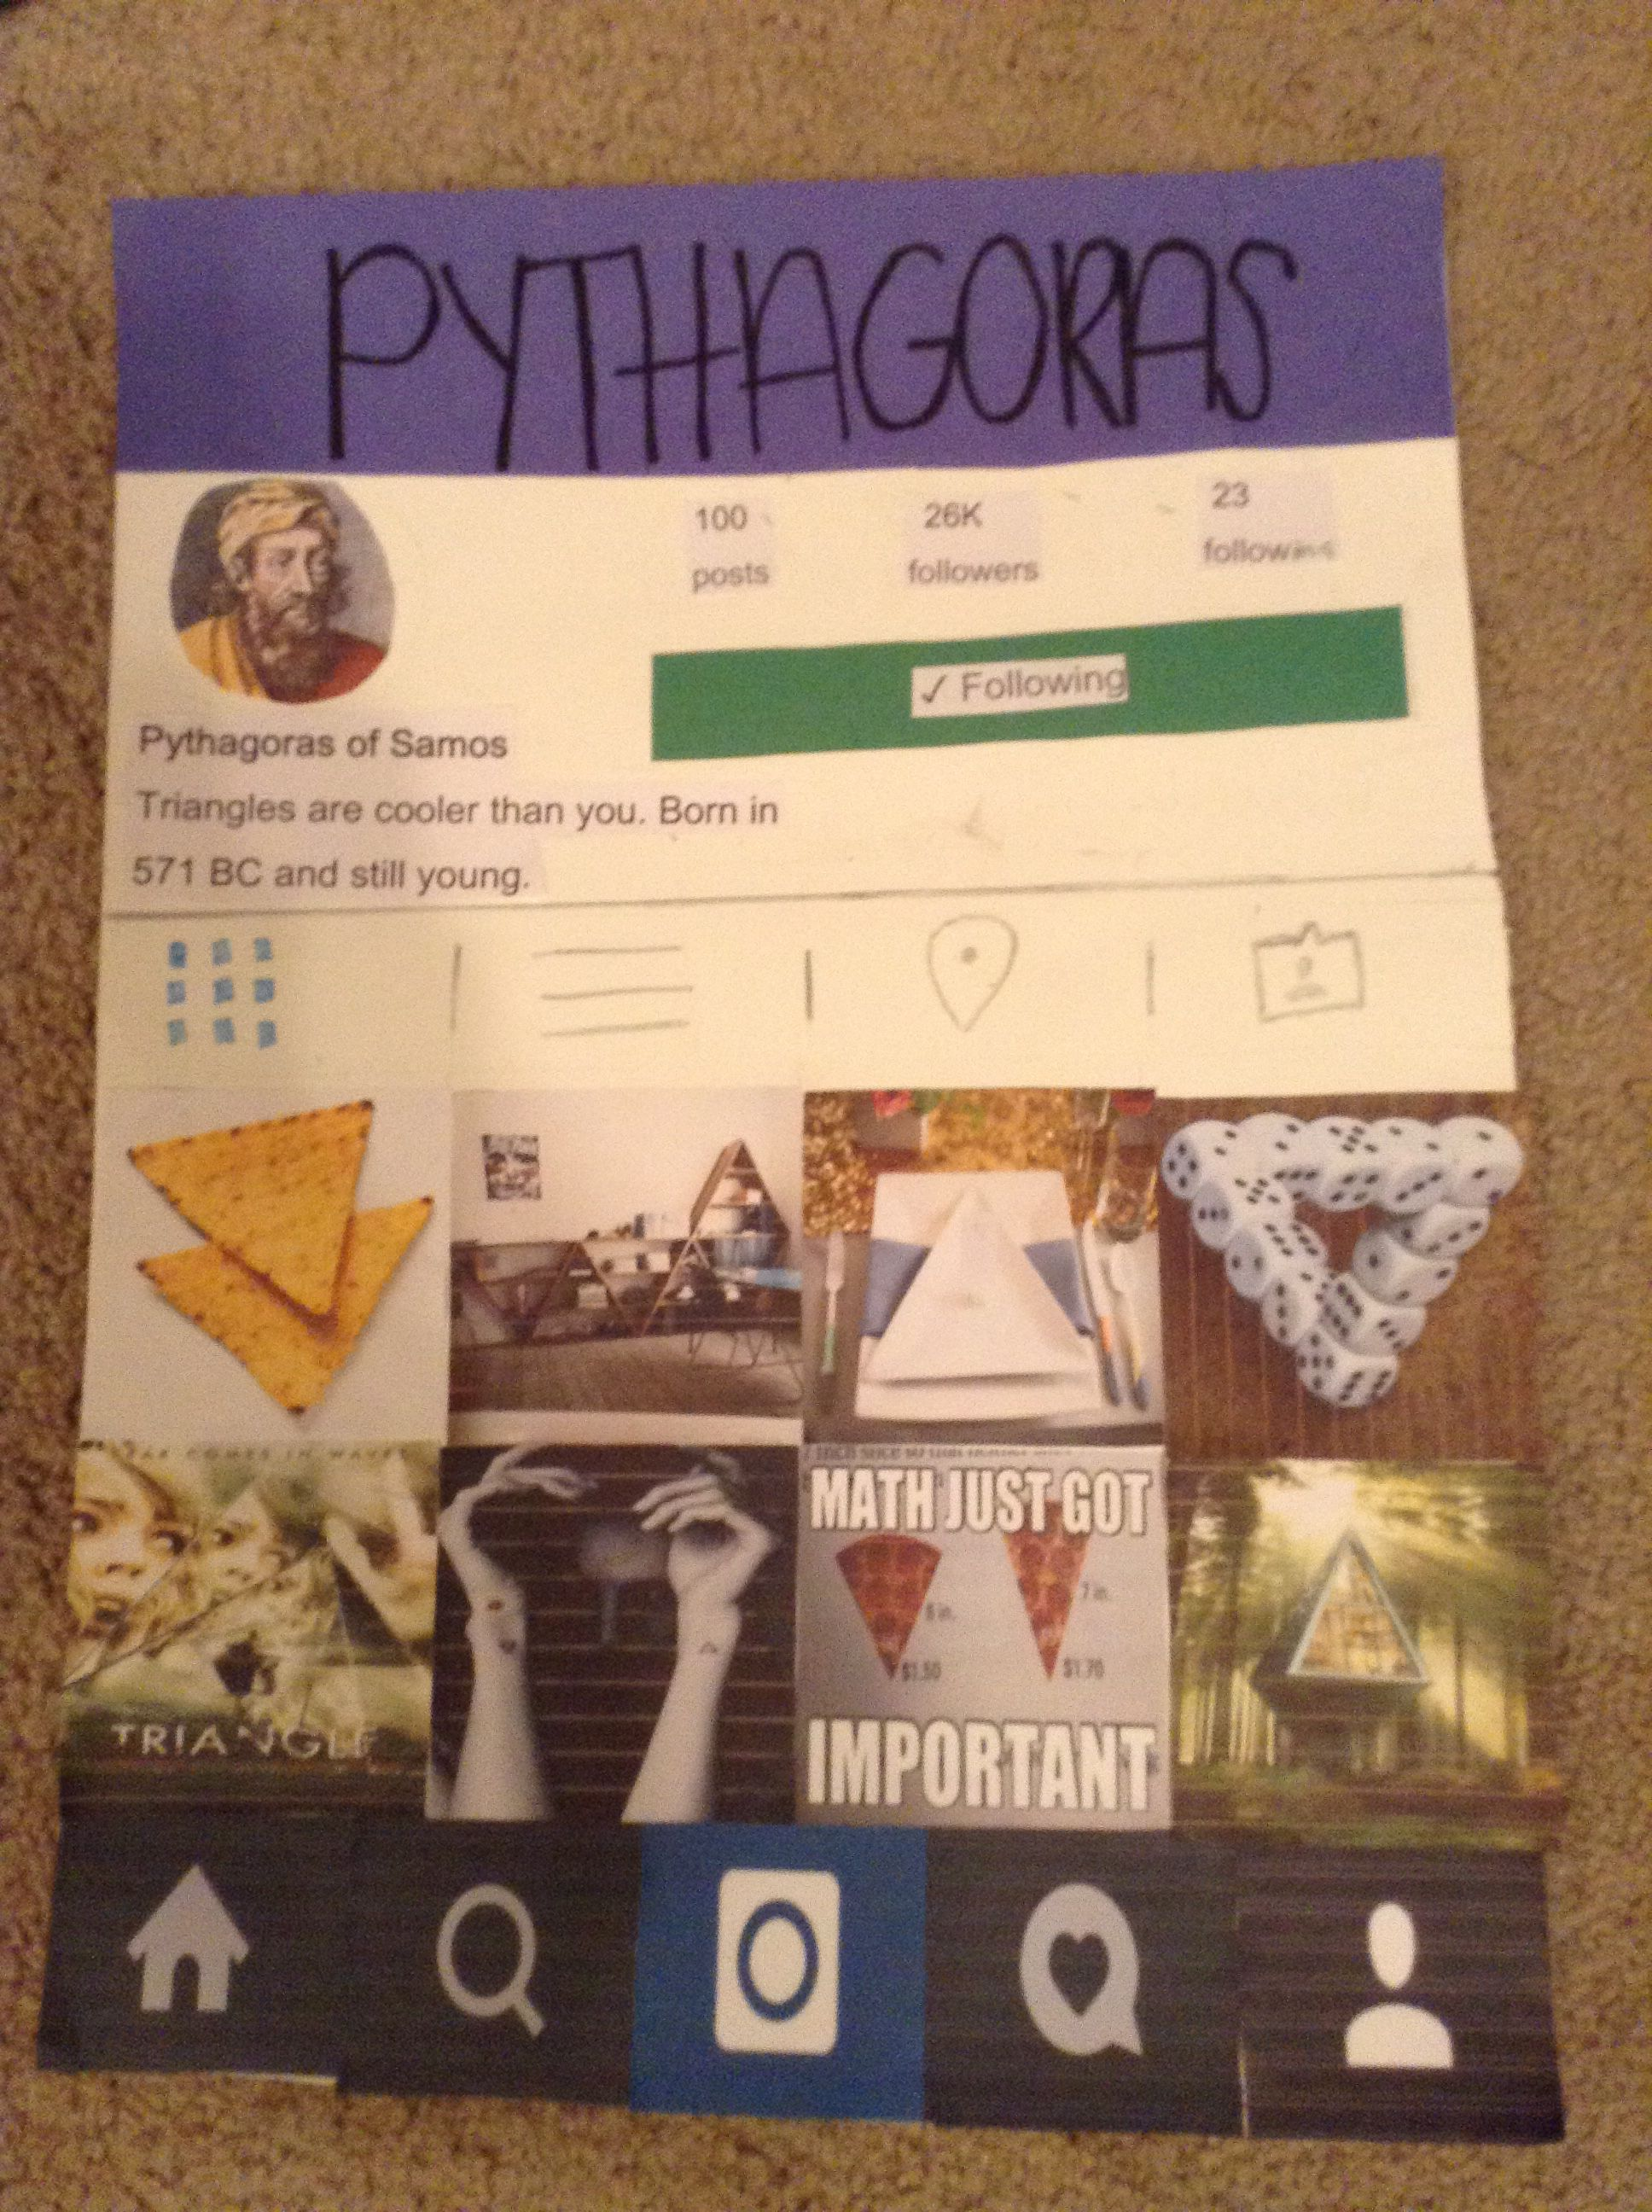 if pythagoras had social media instagram version lymoore209 if pythagoras had social media instagram version lymoore209